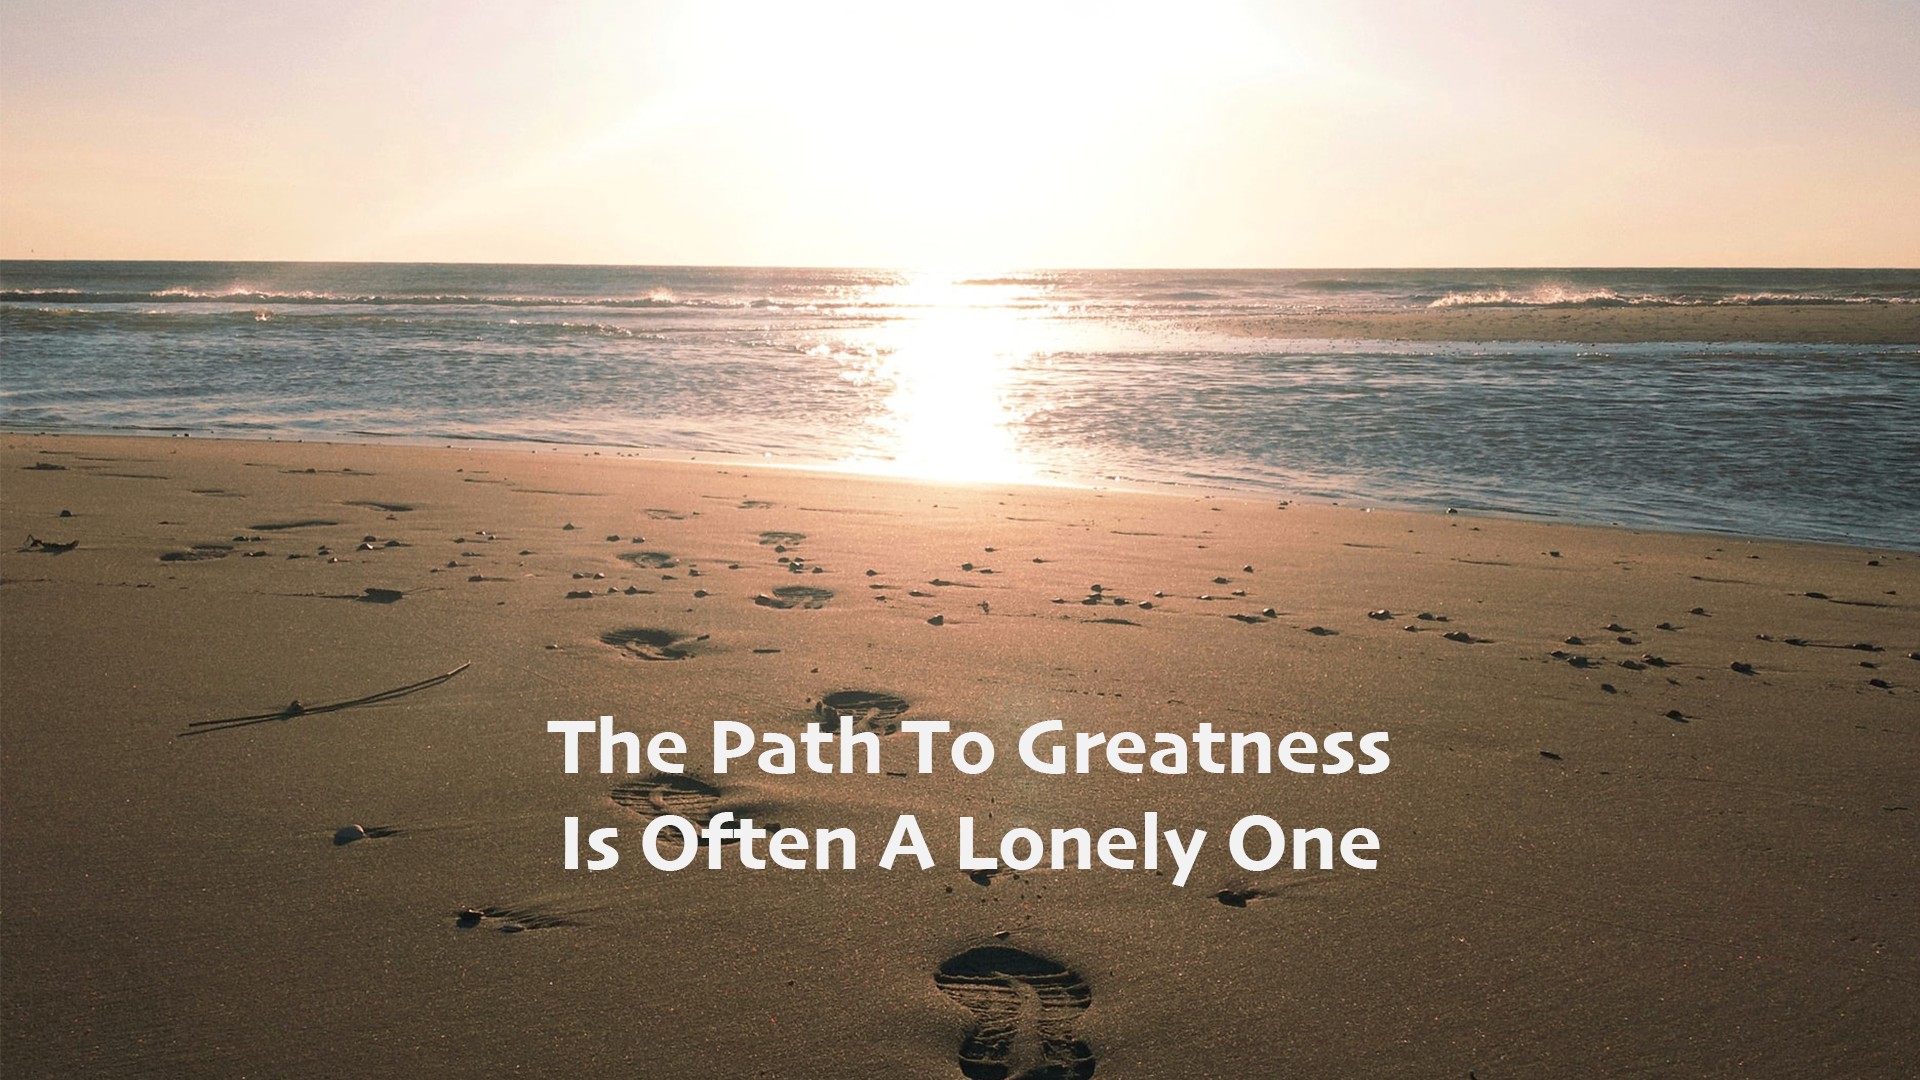 The Path To Greatness Is Often A Lonely One